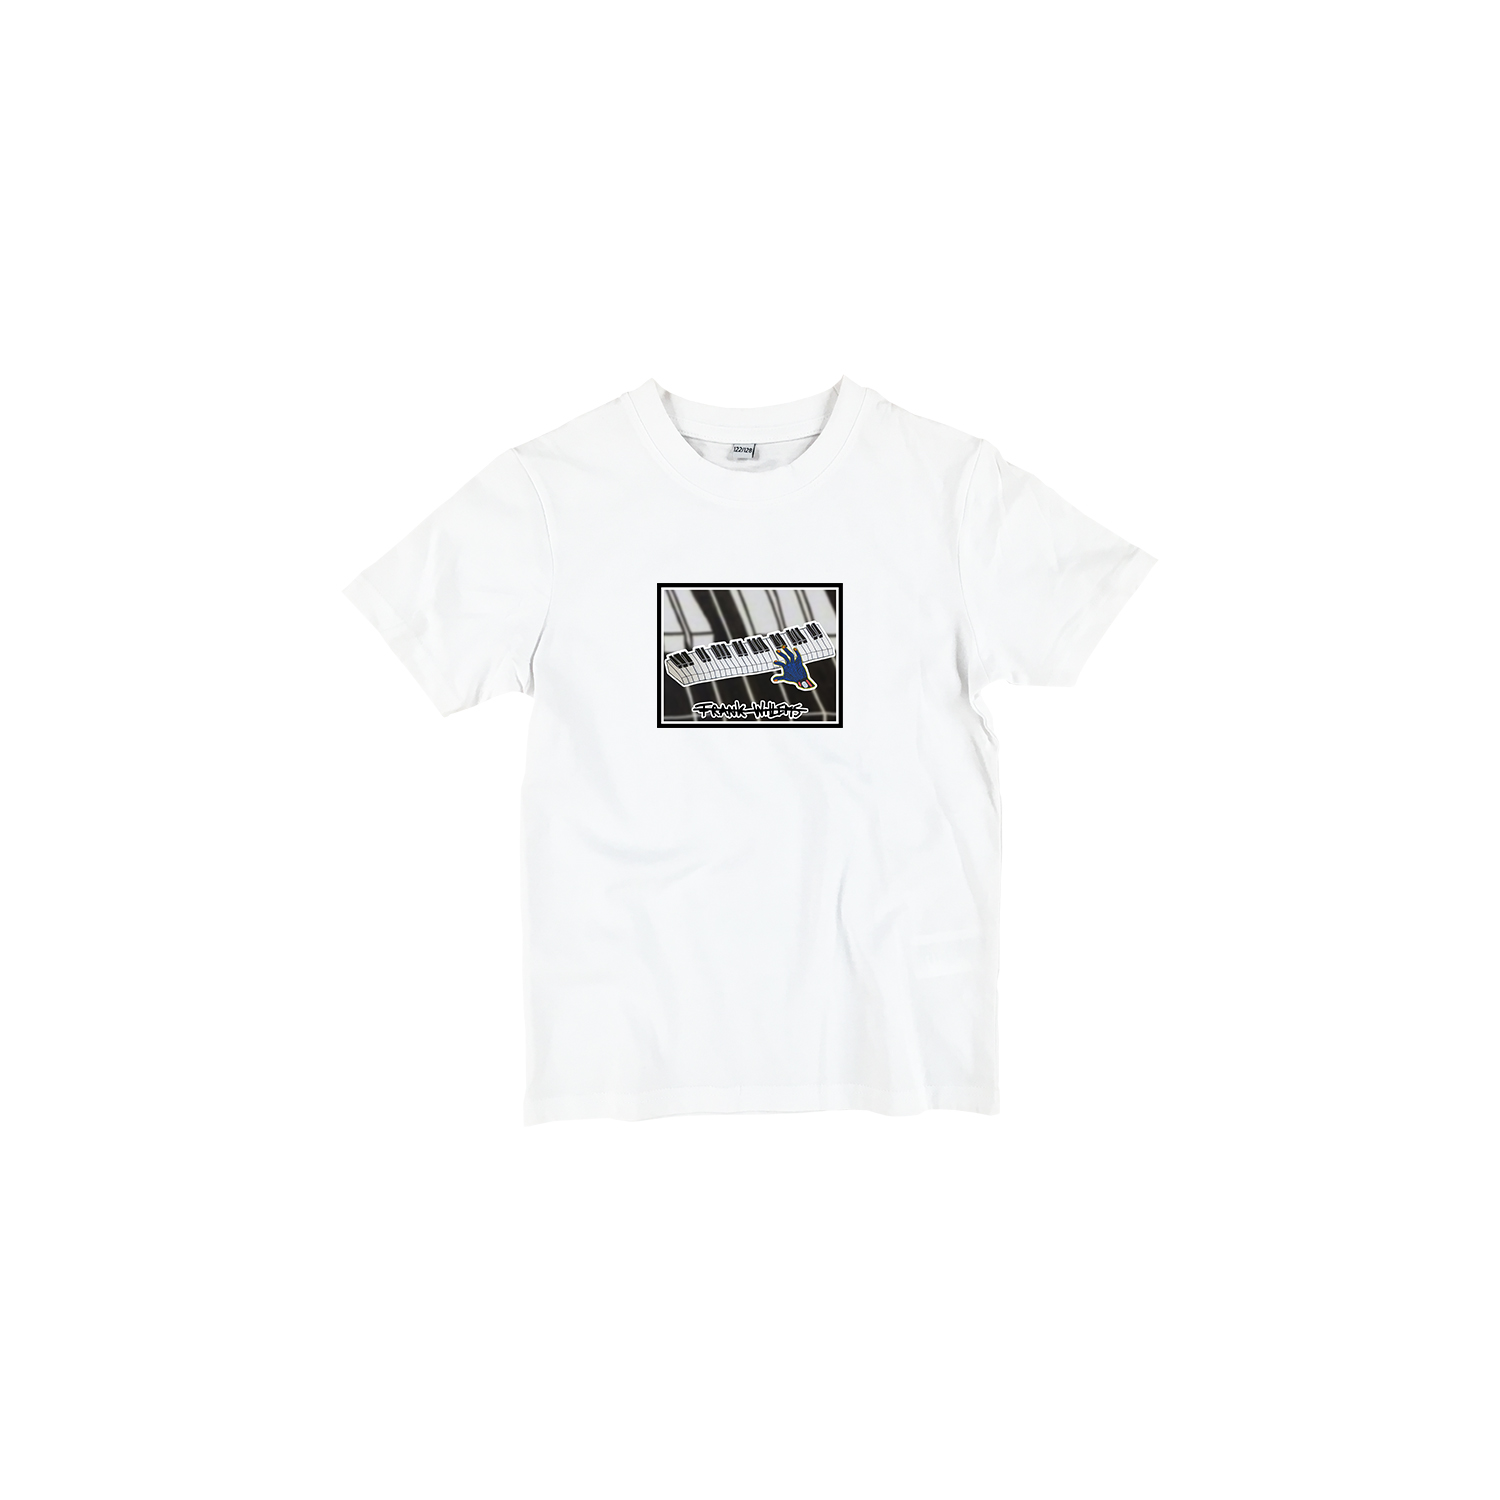 Kids T-shirt white - ONE PRESS CLOSER TO MUSIC - Frank Willems